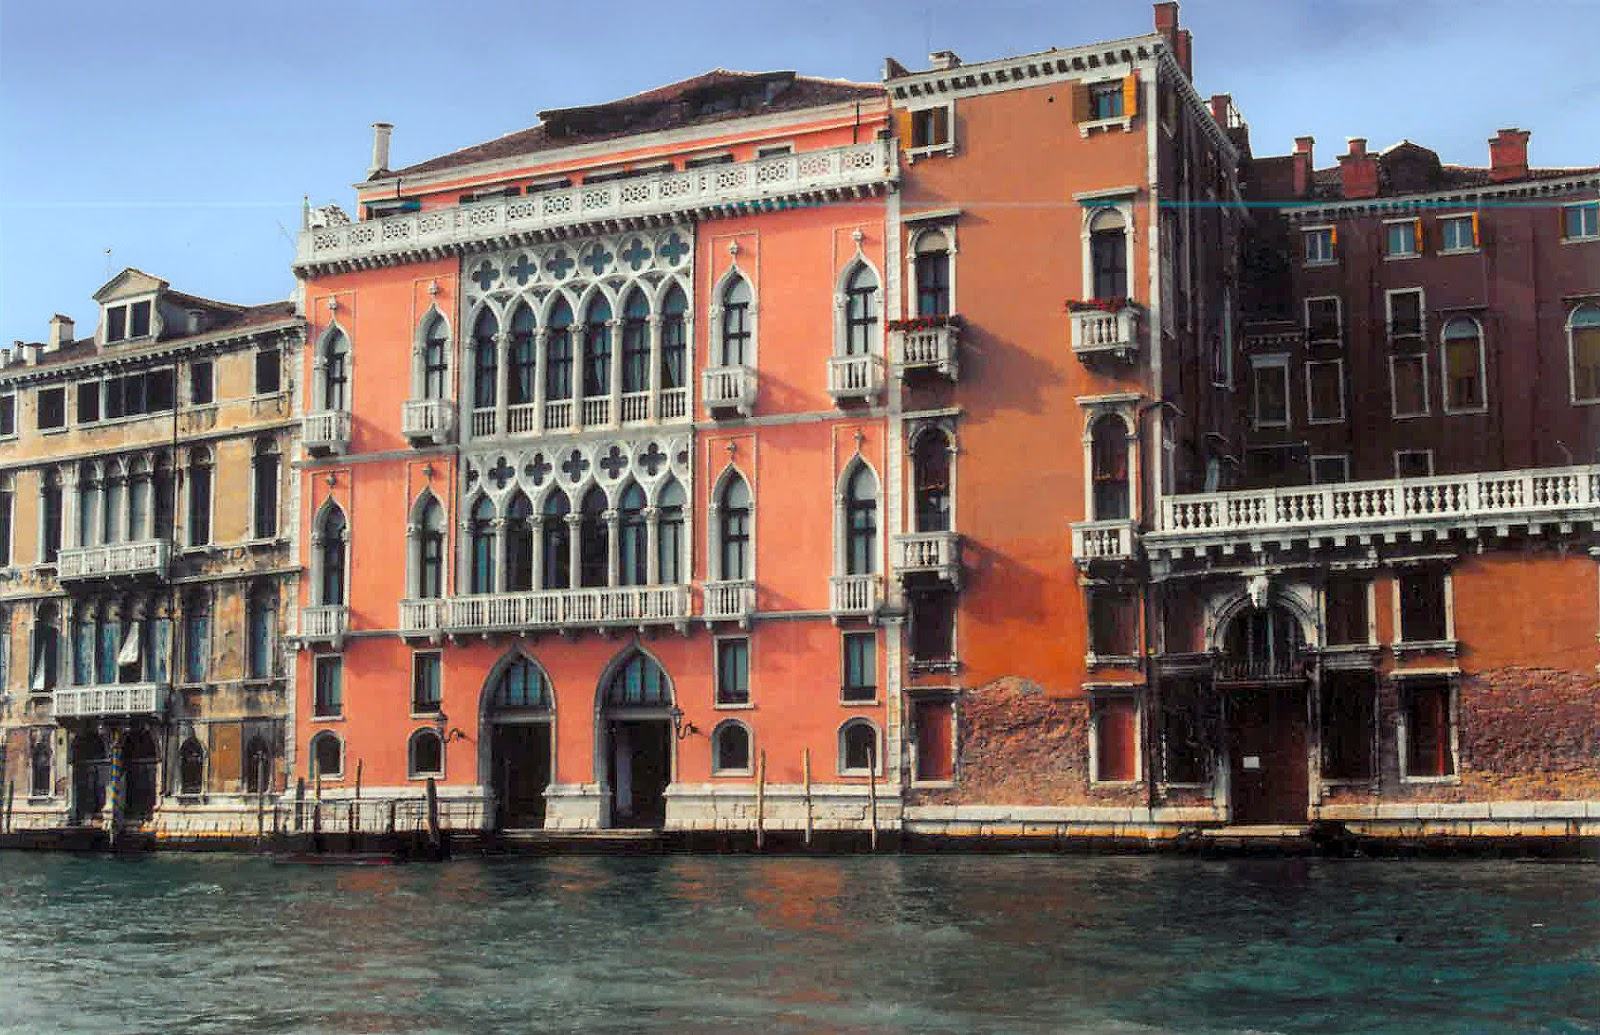 Reference image of the Palazzo Pisani Moretta in Venice Italy